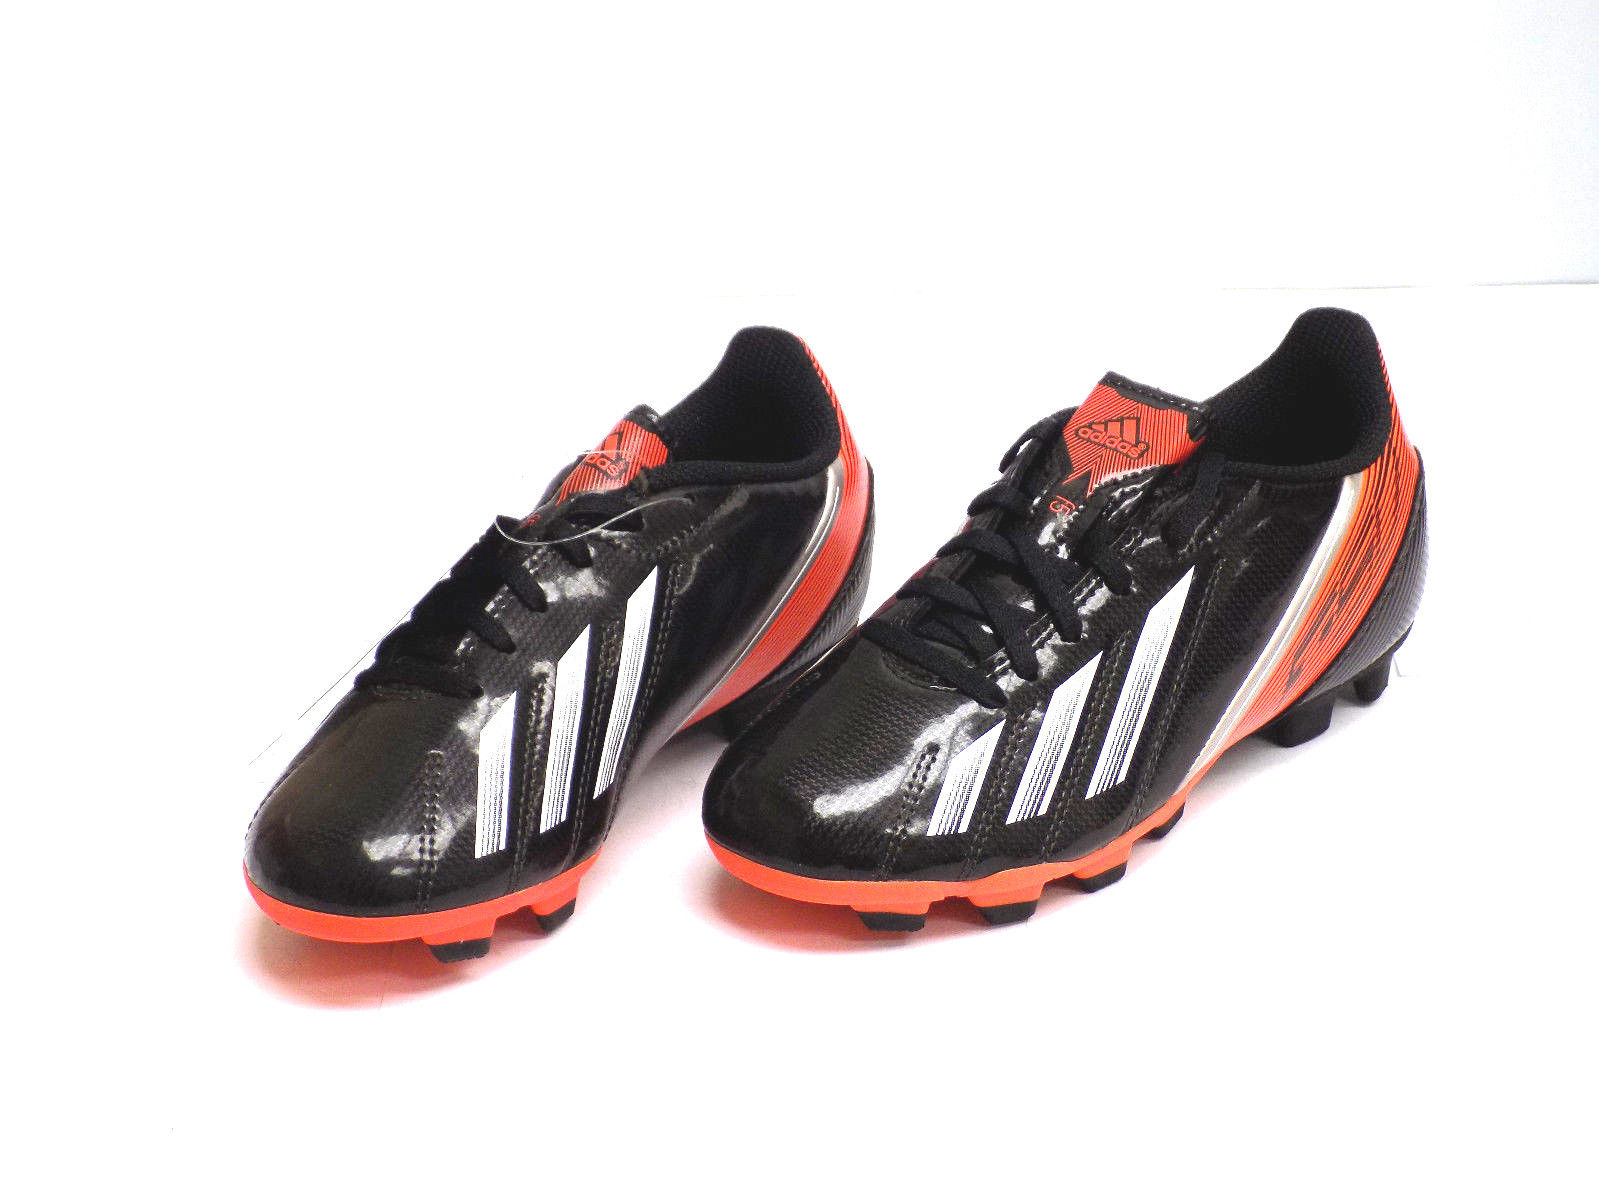 online retailer 1252e 306ef Adidas F5 TRX FG J Youth Kids Black Red Outdoor Soccer Cleat Shoes (1.5)